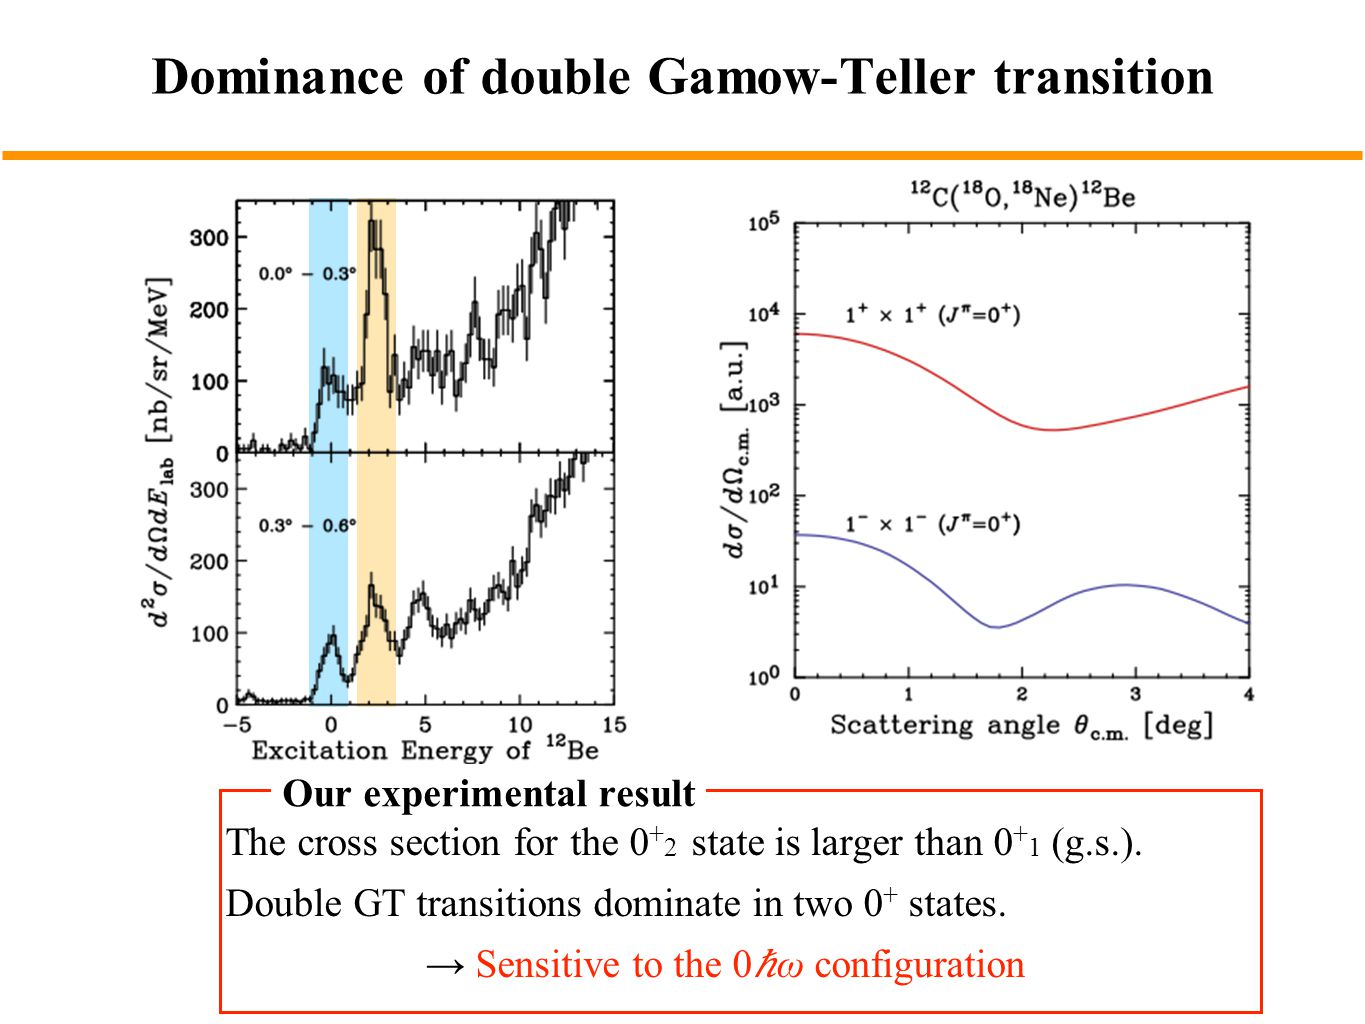 Dominance of double Gamow-Teller transition The cross section for the 0 + 2 state is larger than 0 + 1 (g.s.).